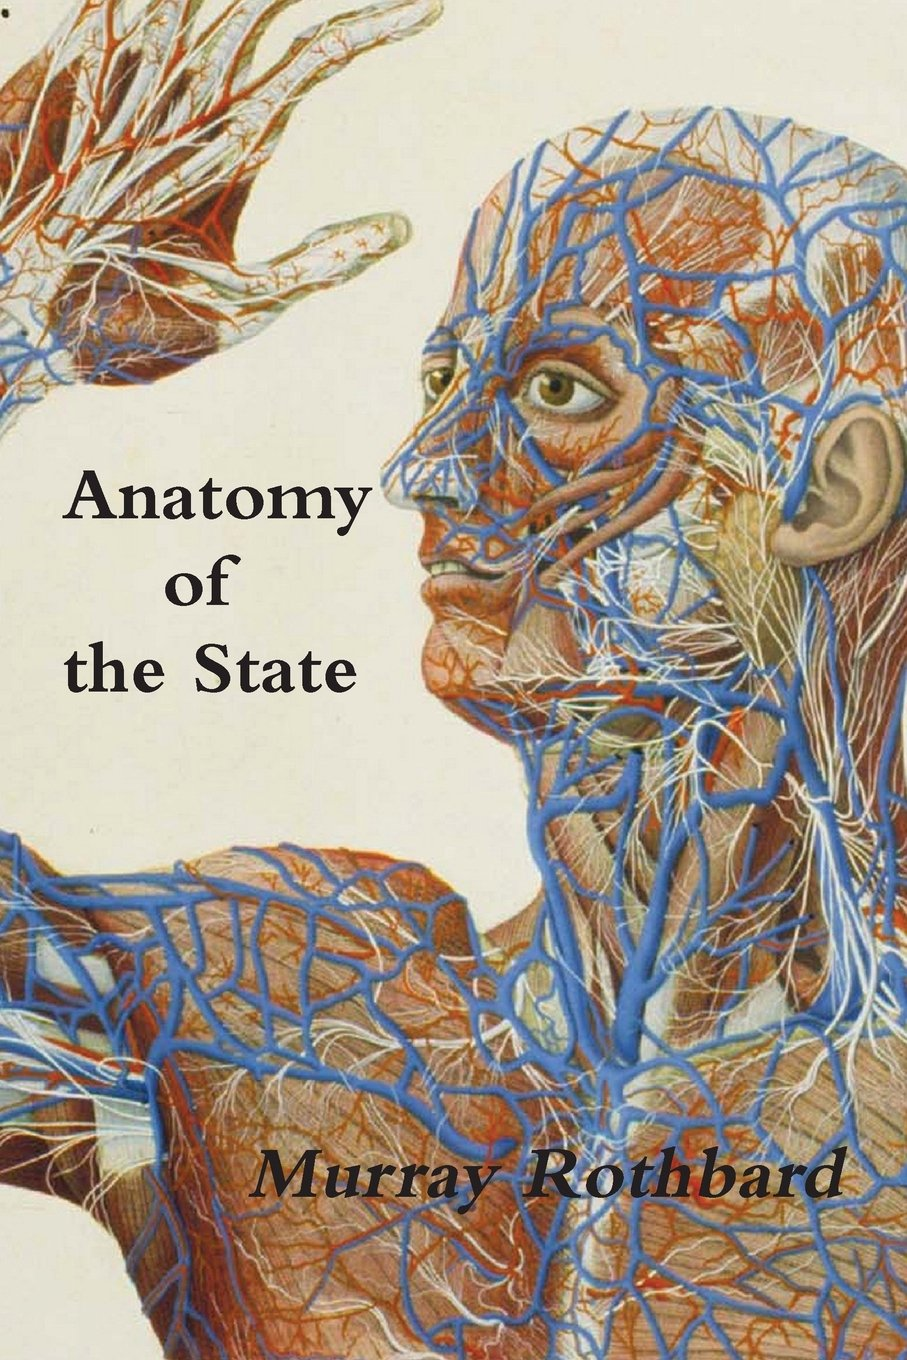 Anatomy of the State: Murray Rothbard: 9788087888438: Amazon.com: Books